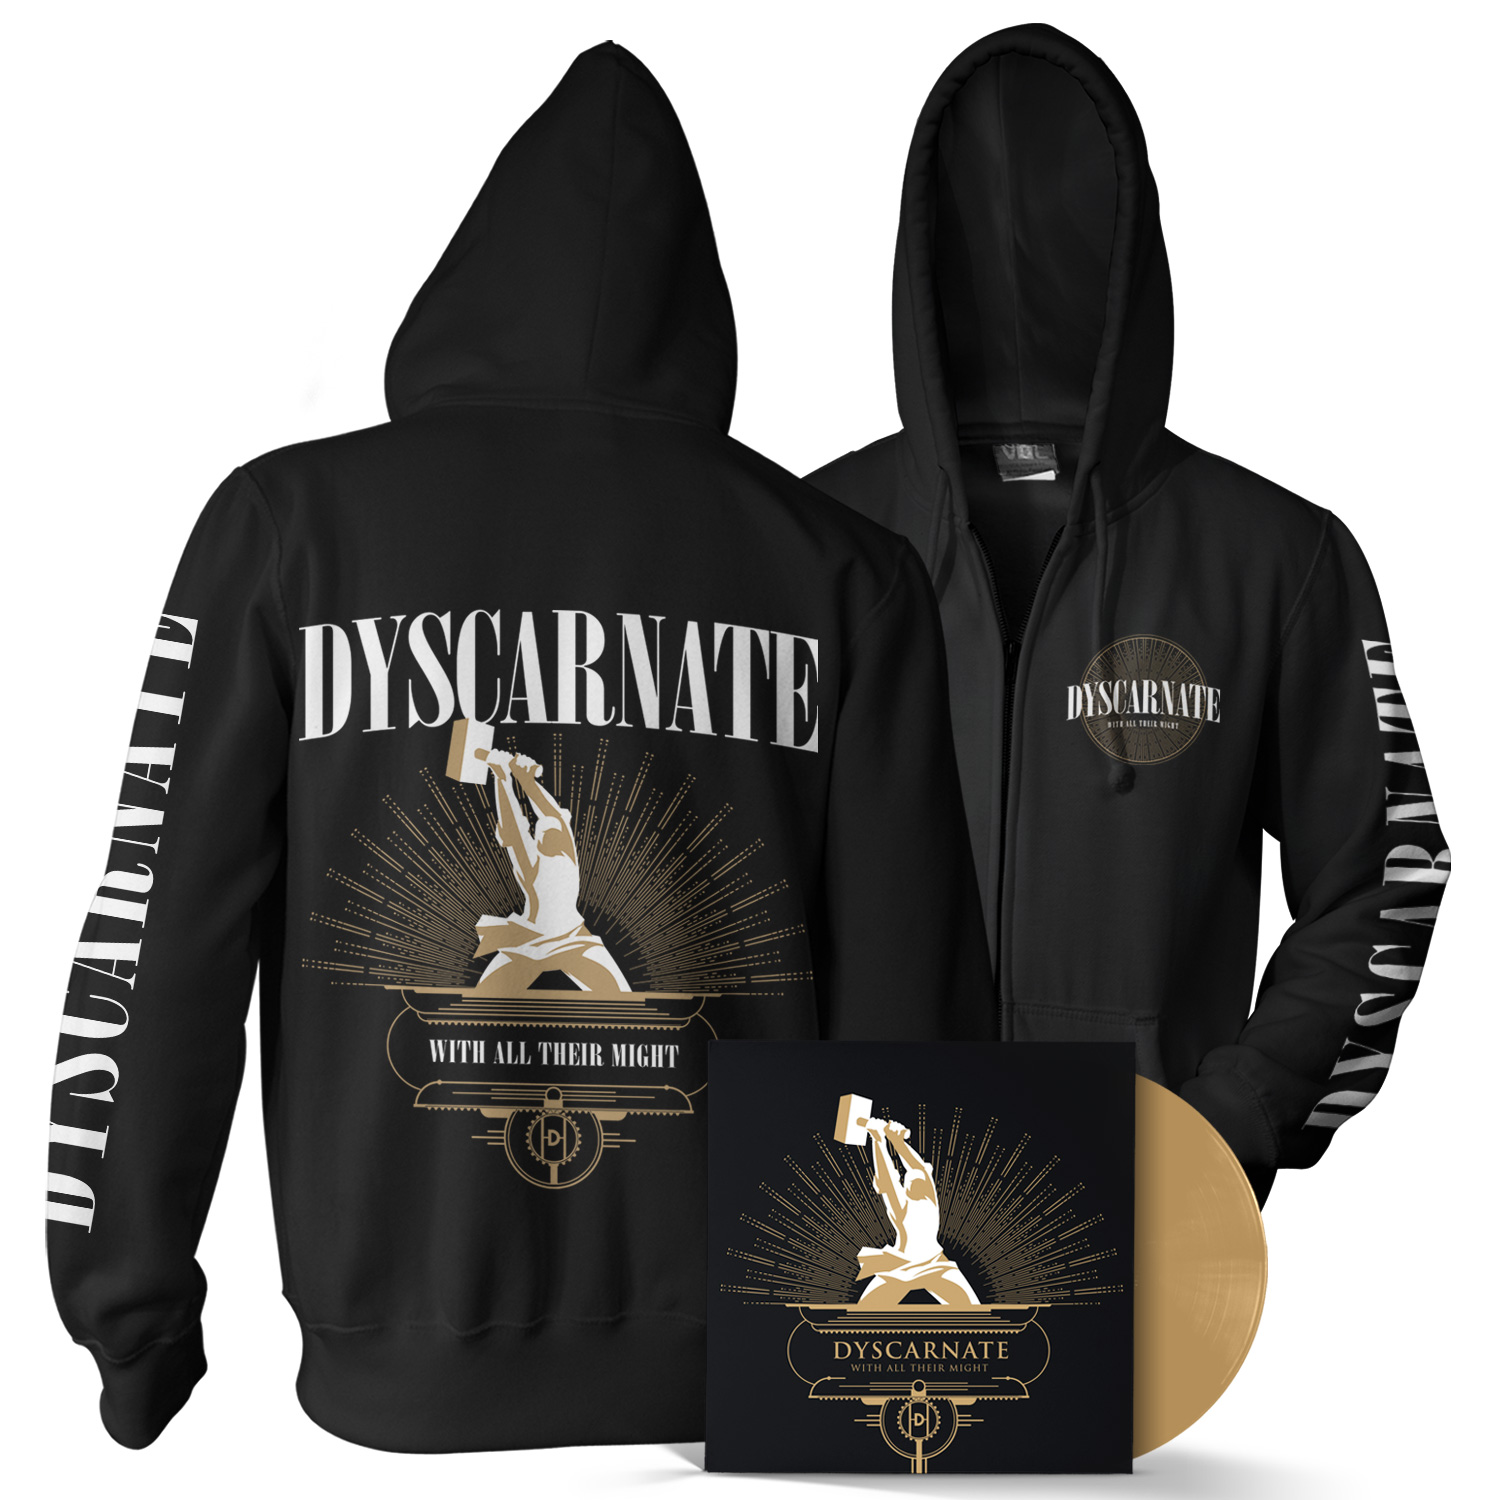 With All Their Might LP + Hoody Bundle